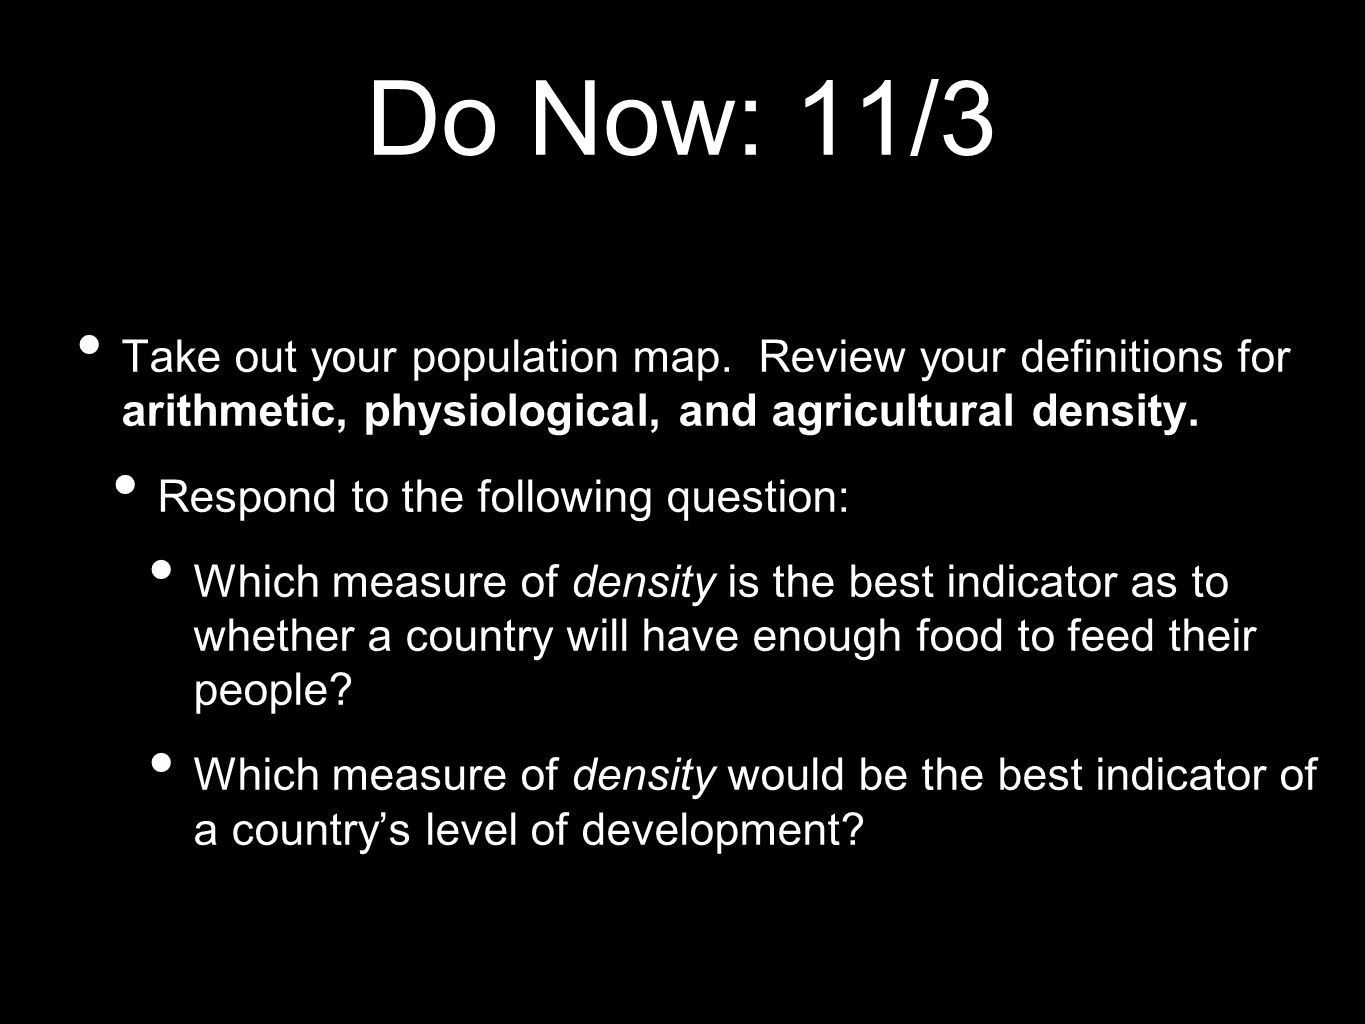 Do Now: 11/3Take out your population map. Review your definitions for arithmetic, physiological, and agricultural density.